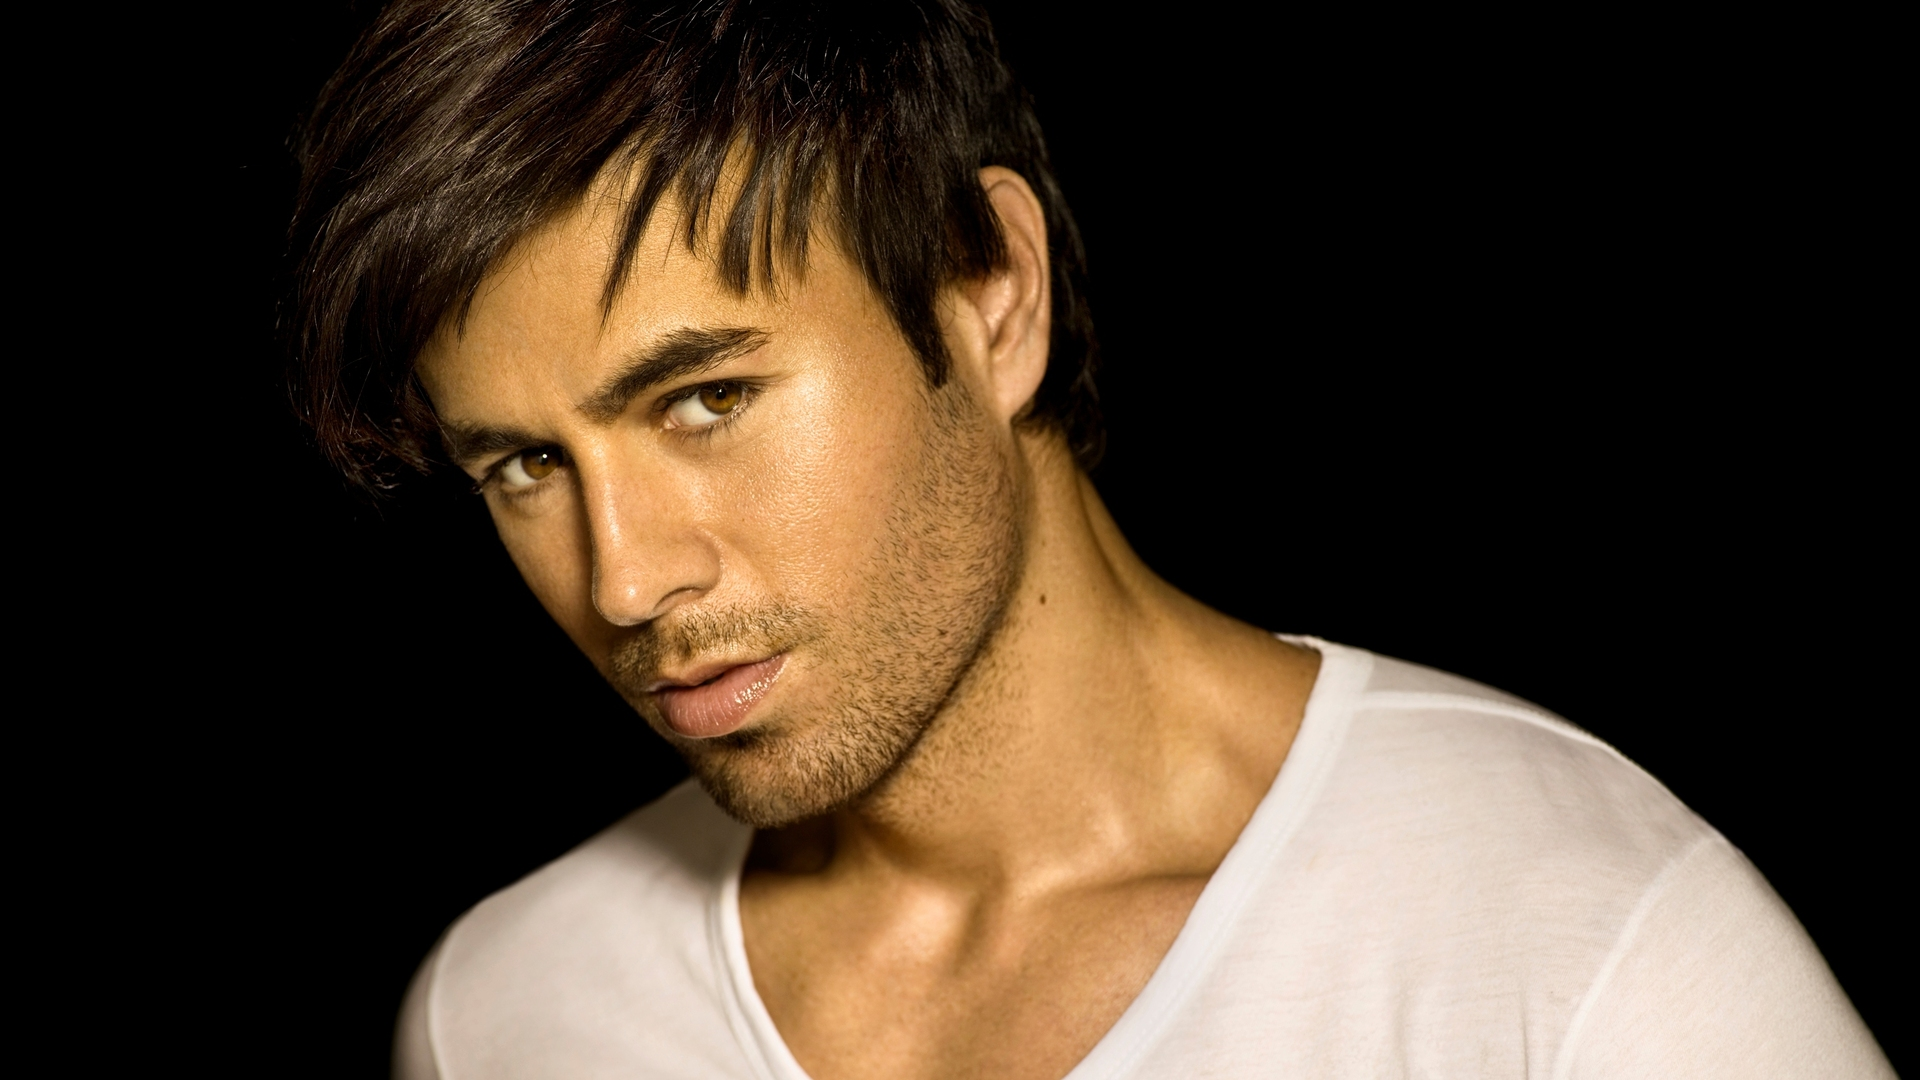 Enrique Enrique Iglesias Wallpaper 27199131 Fanpop